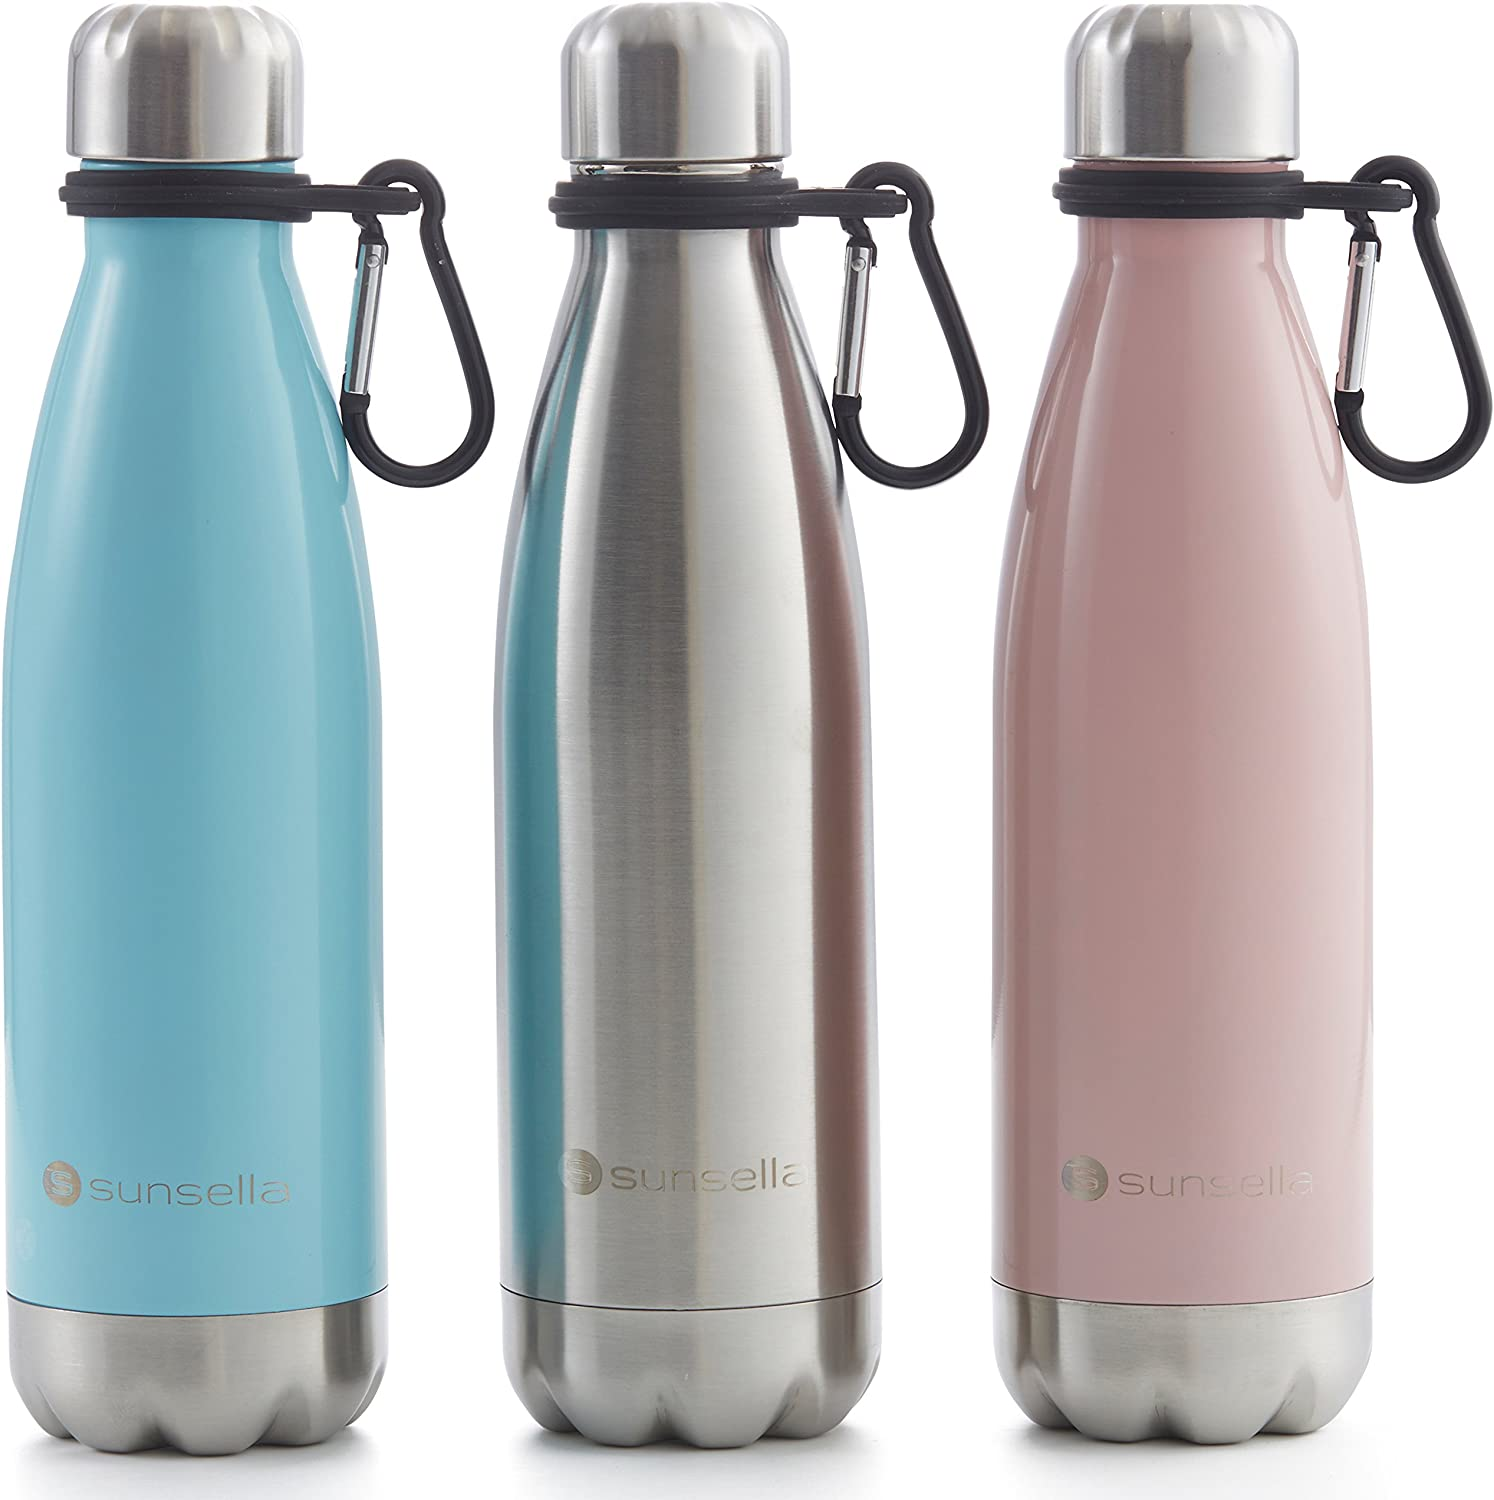 Water Bottle Carrier Insulated Cover Bag Holder Drink Cup Holder Portable 6L